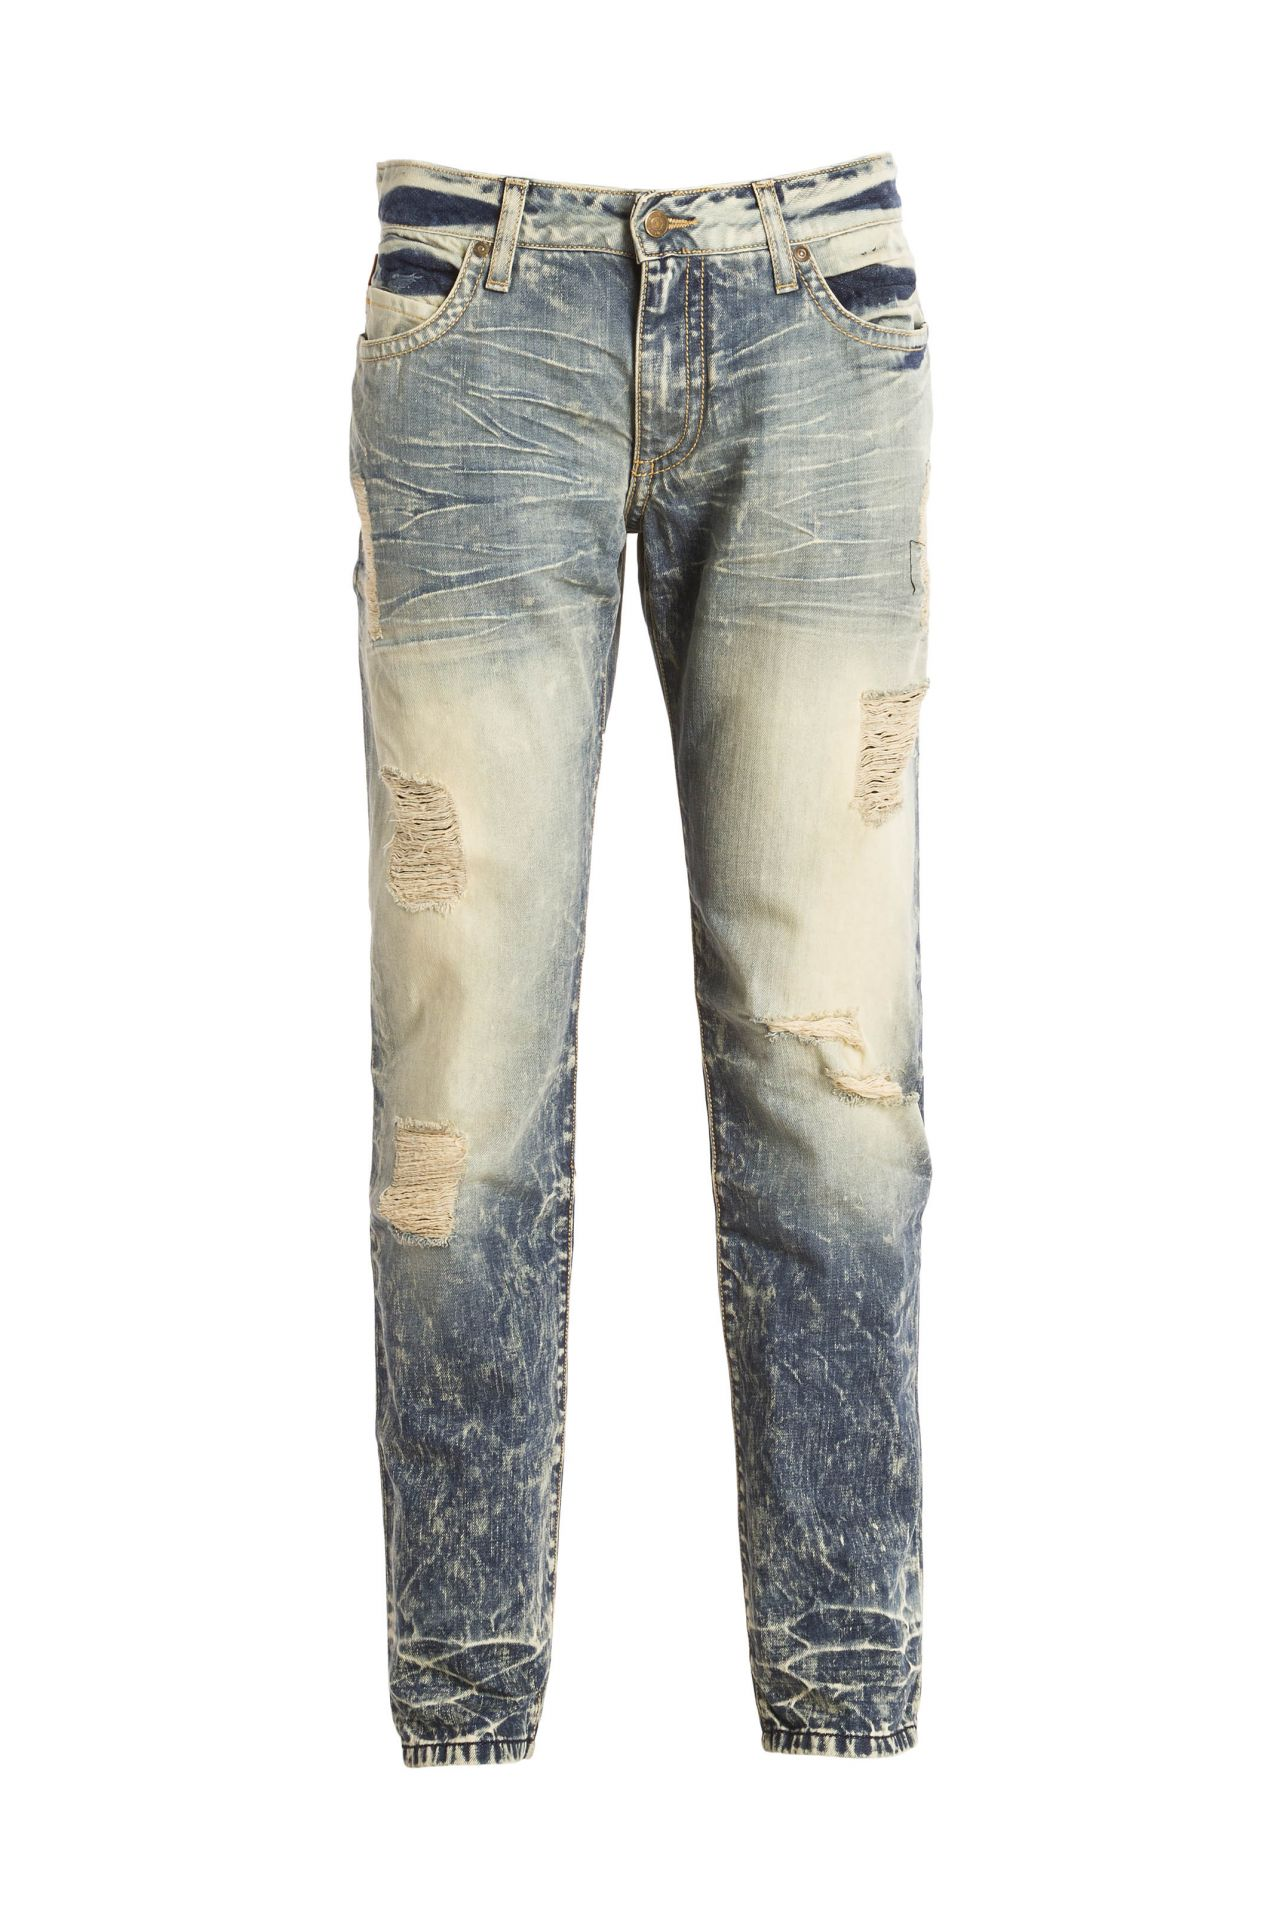 MIRRORED POCKET JEANS IN LIGHT BLUE WITH CRYSTALS